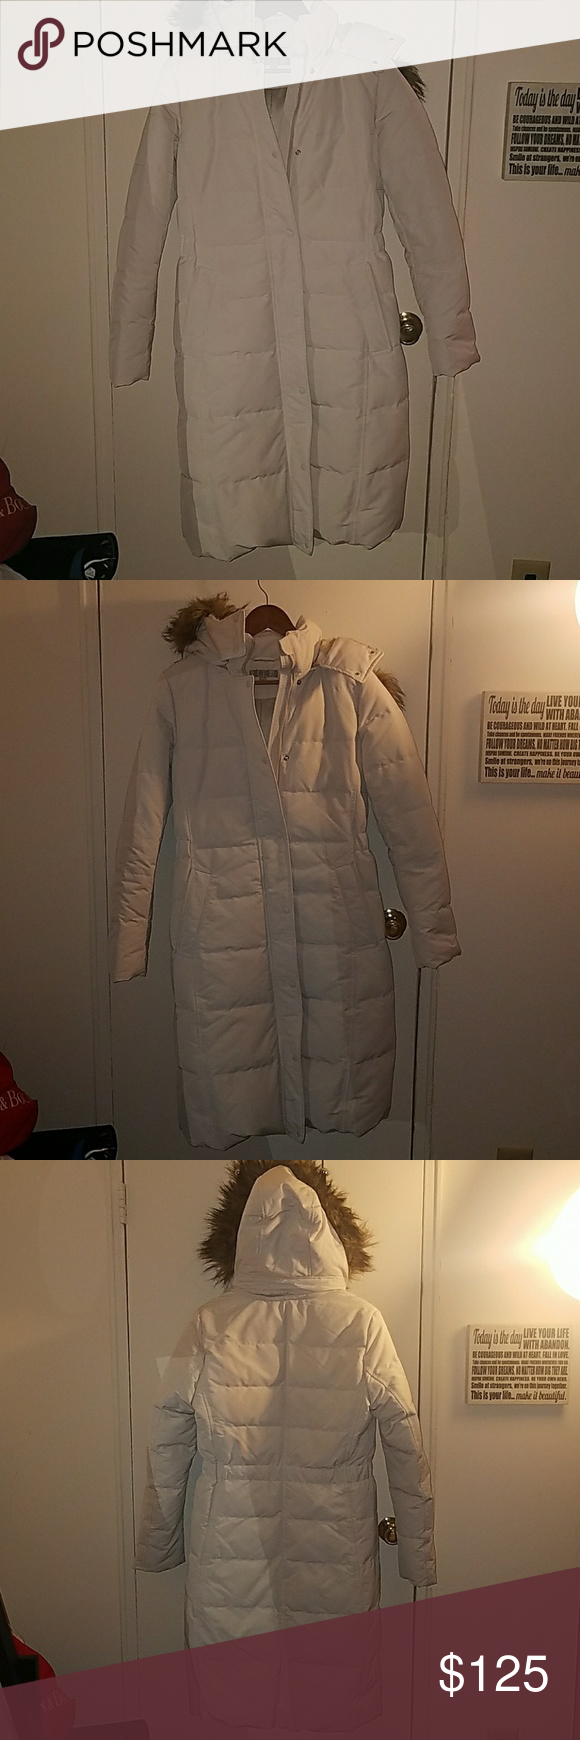 White Uniqlo coat Brand Uniqlo Size S Color white/ivory